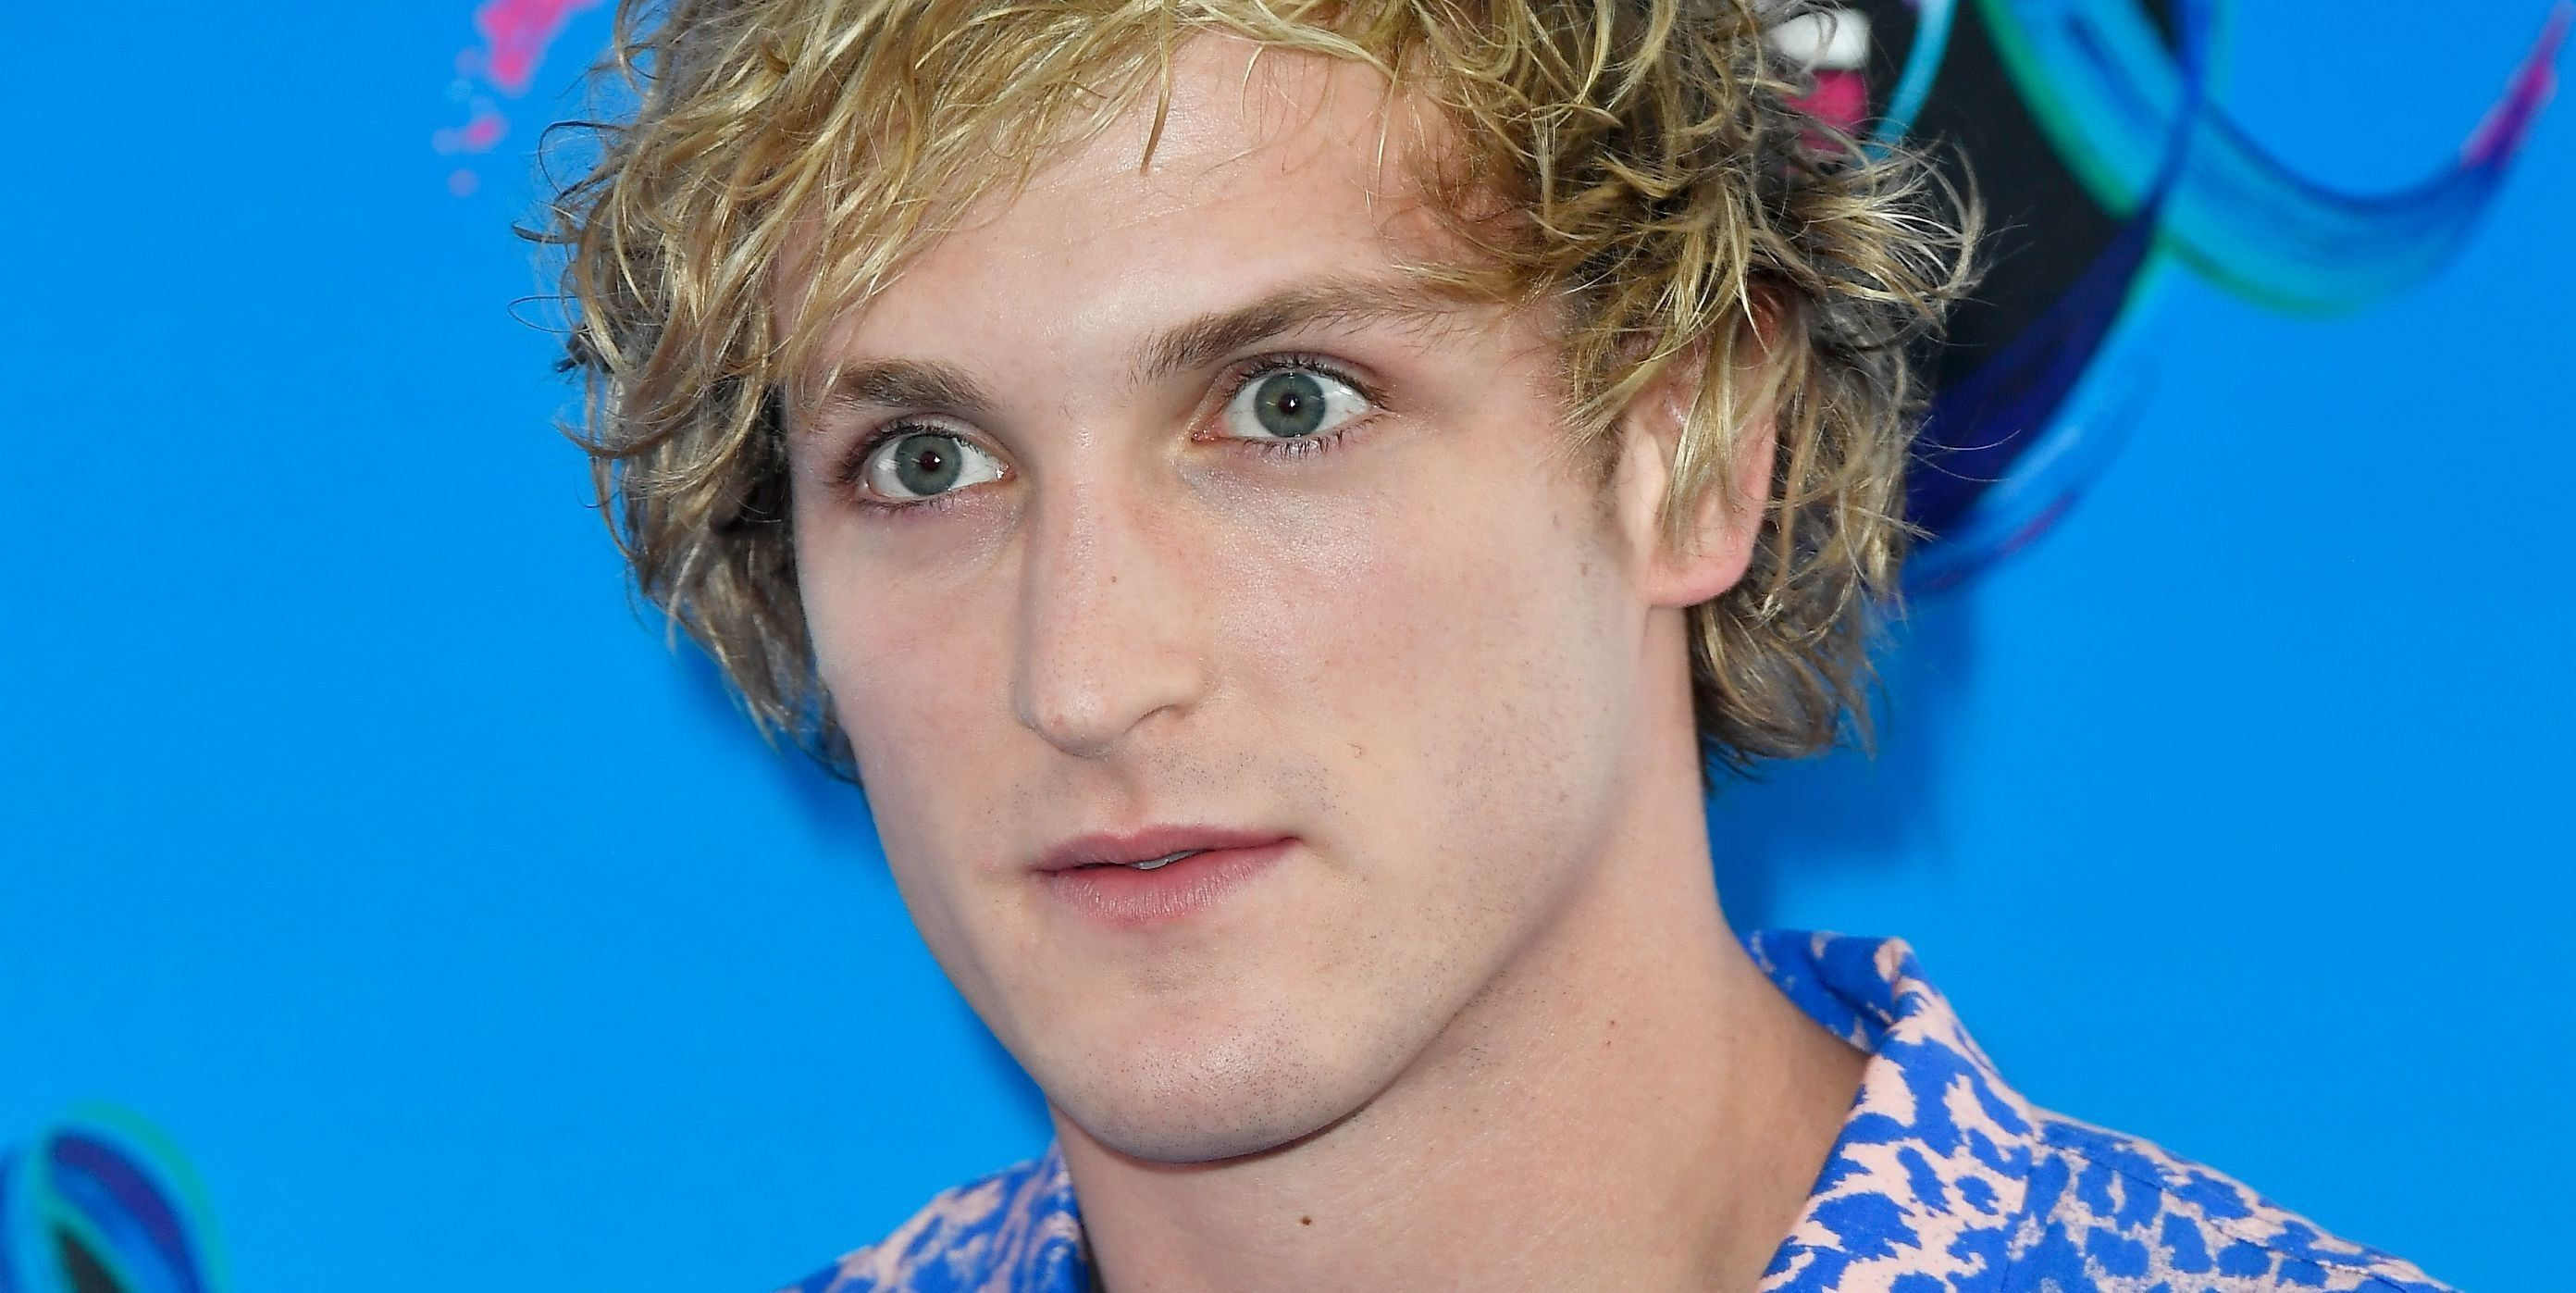 Logan Paul, 23, eclipsed his 2017 earnings by $2 million last year.